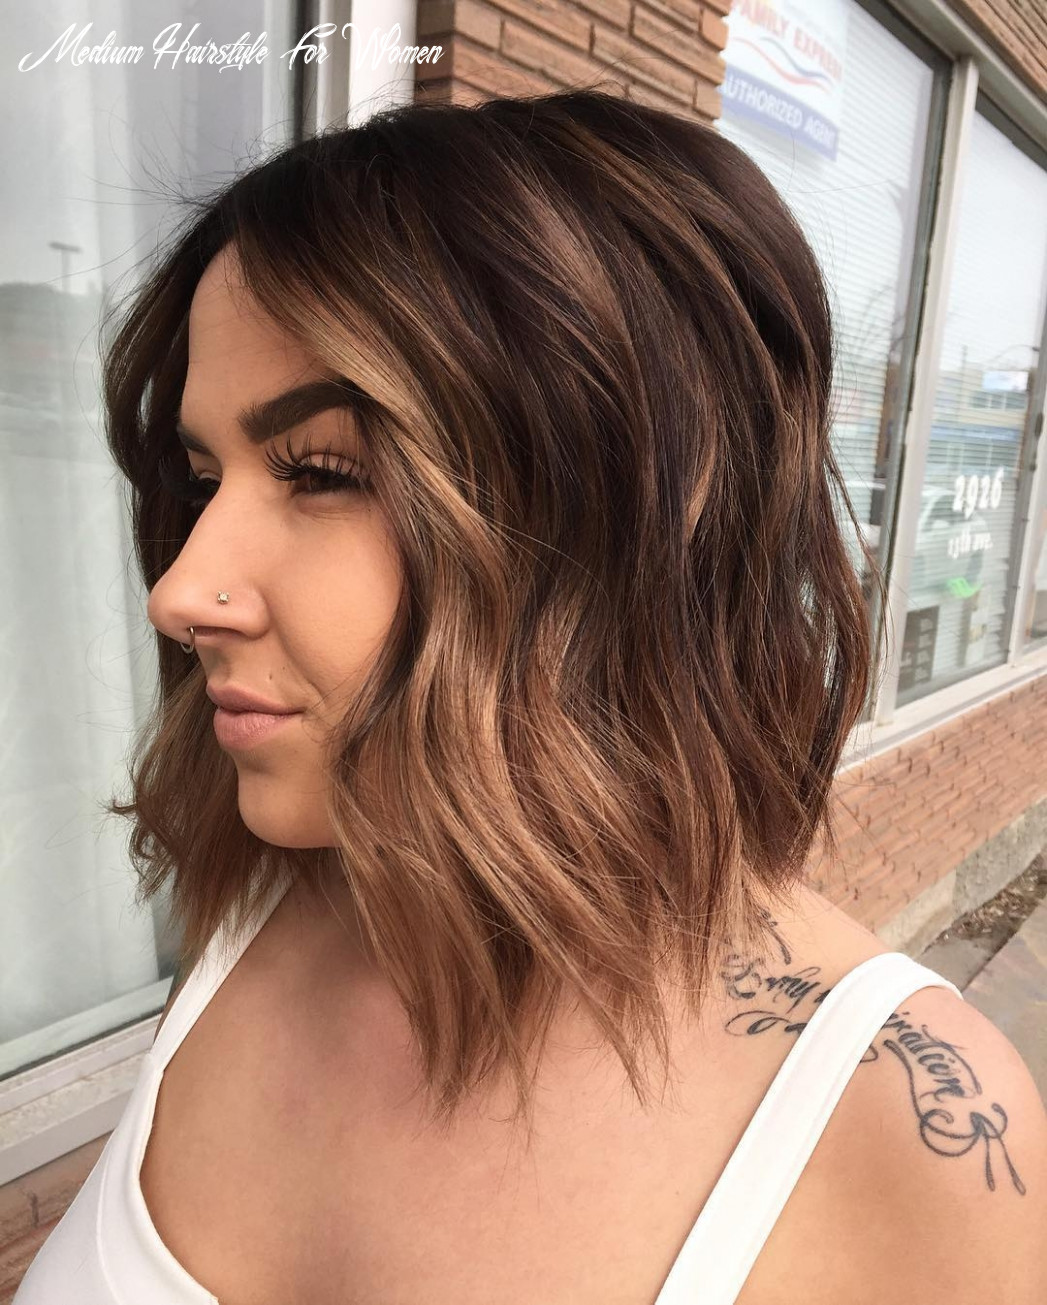 Medium Length Hairstyles And Haircuts For Women's 10